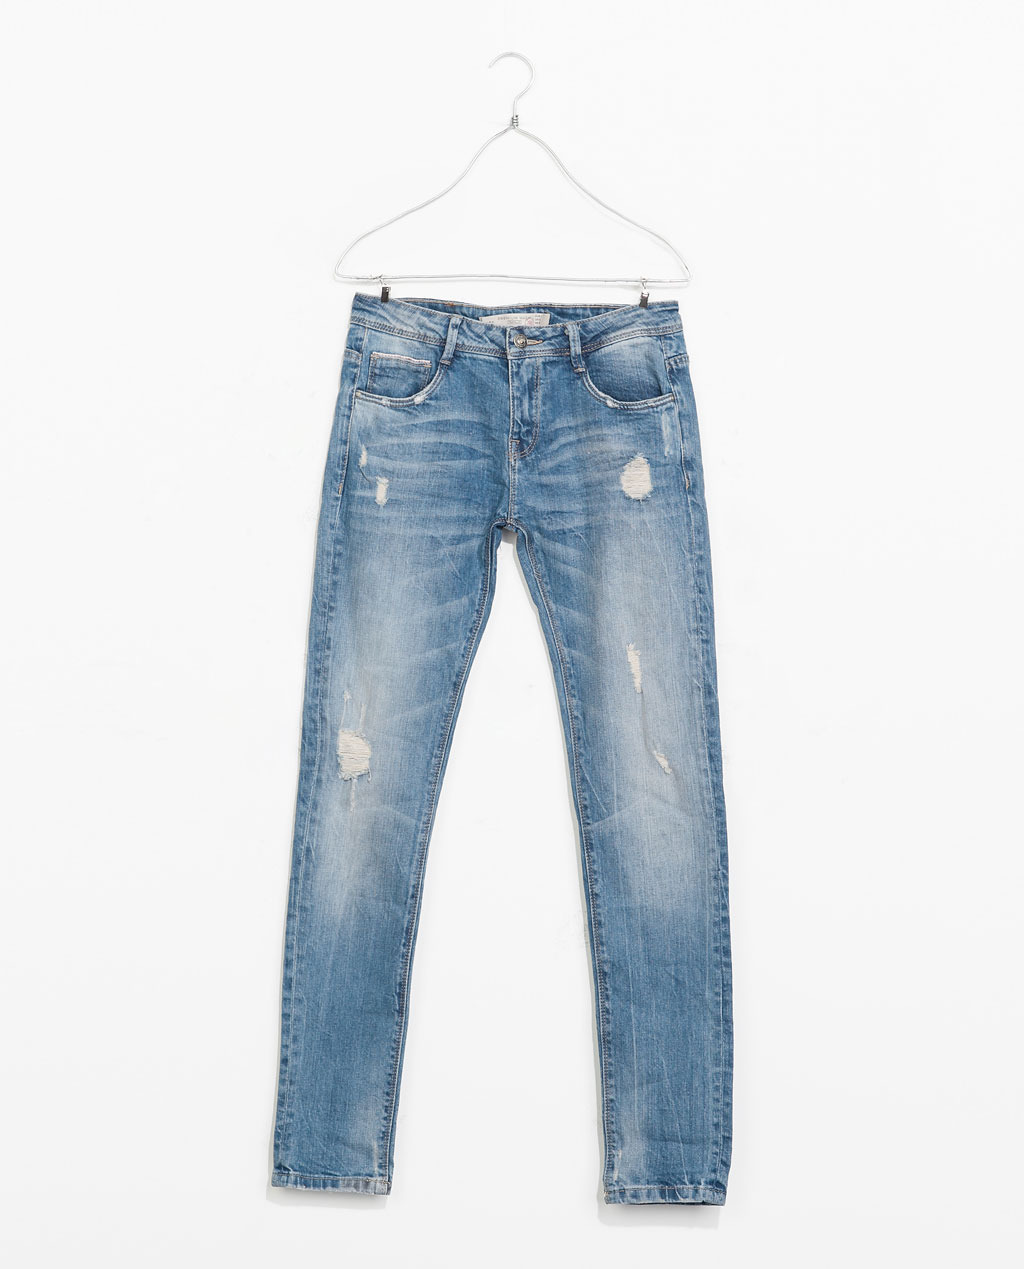 5 Pocket Jeans - length: standard; pattern: plain; pocket detail: traditional 5 pocket; style: slim leg; waist: mid/regular rise; predominant colour: denim; occasions: casual; fibres: cotton - stretch; jeans detail: whiskering, shading down centre of thigh, washed/faded; texture group: denim; pattern type: fabric; season: s/s 2014